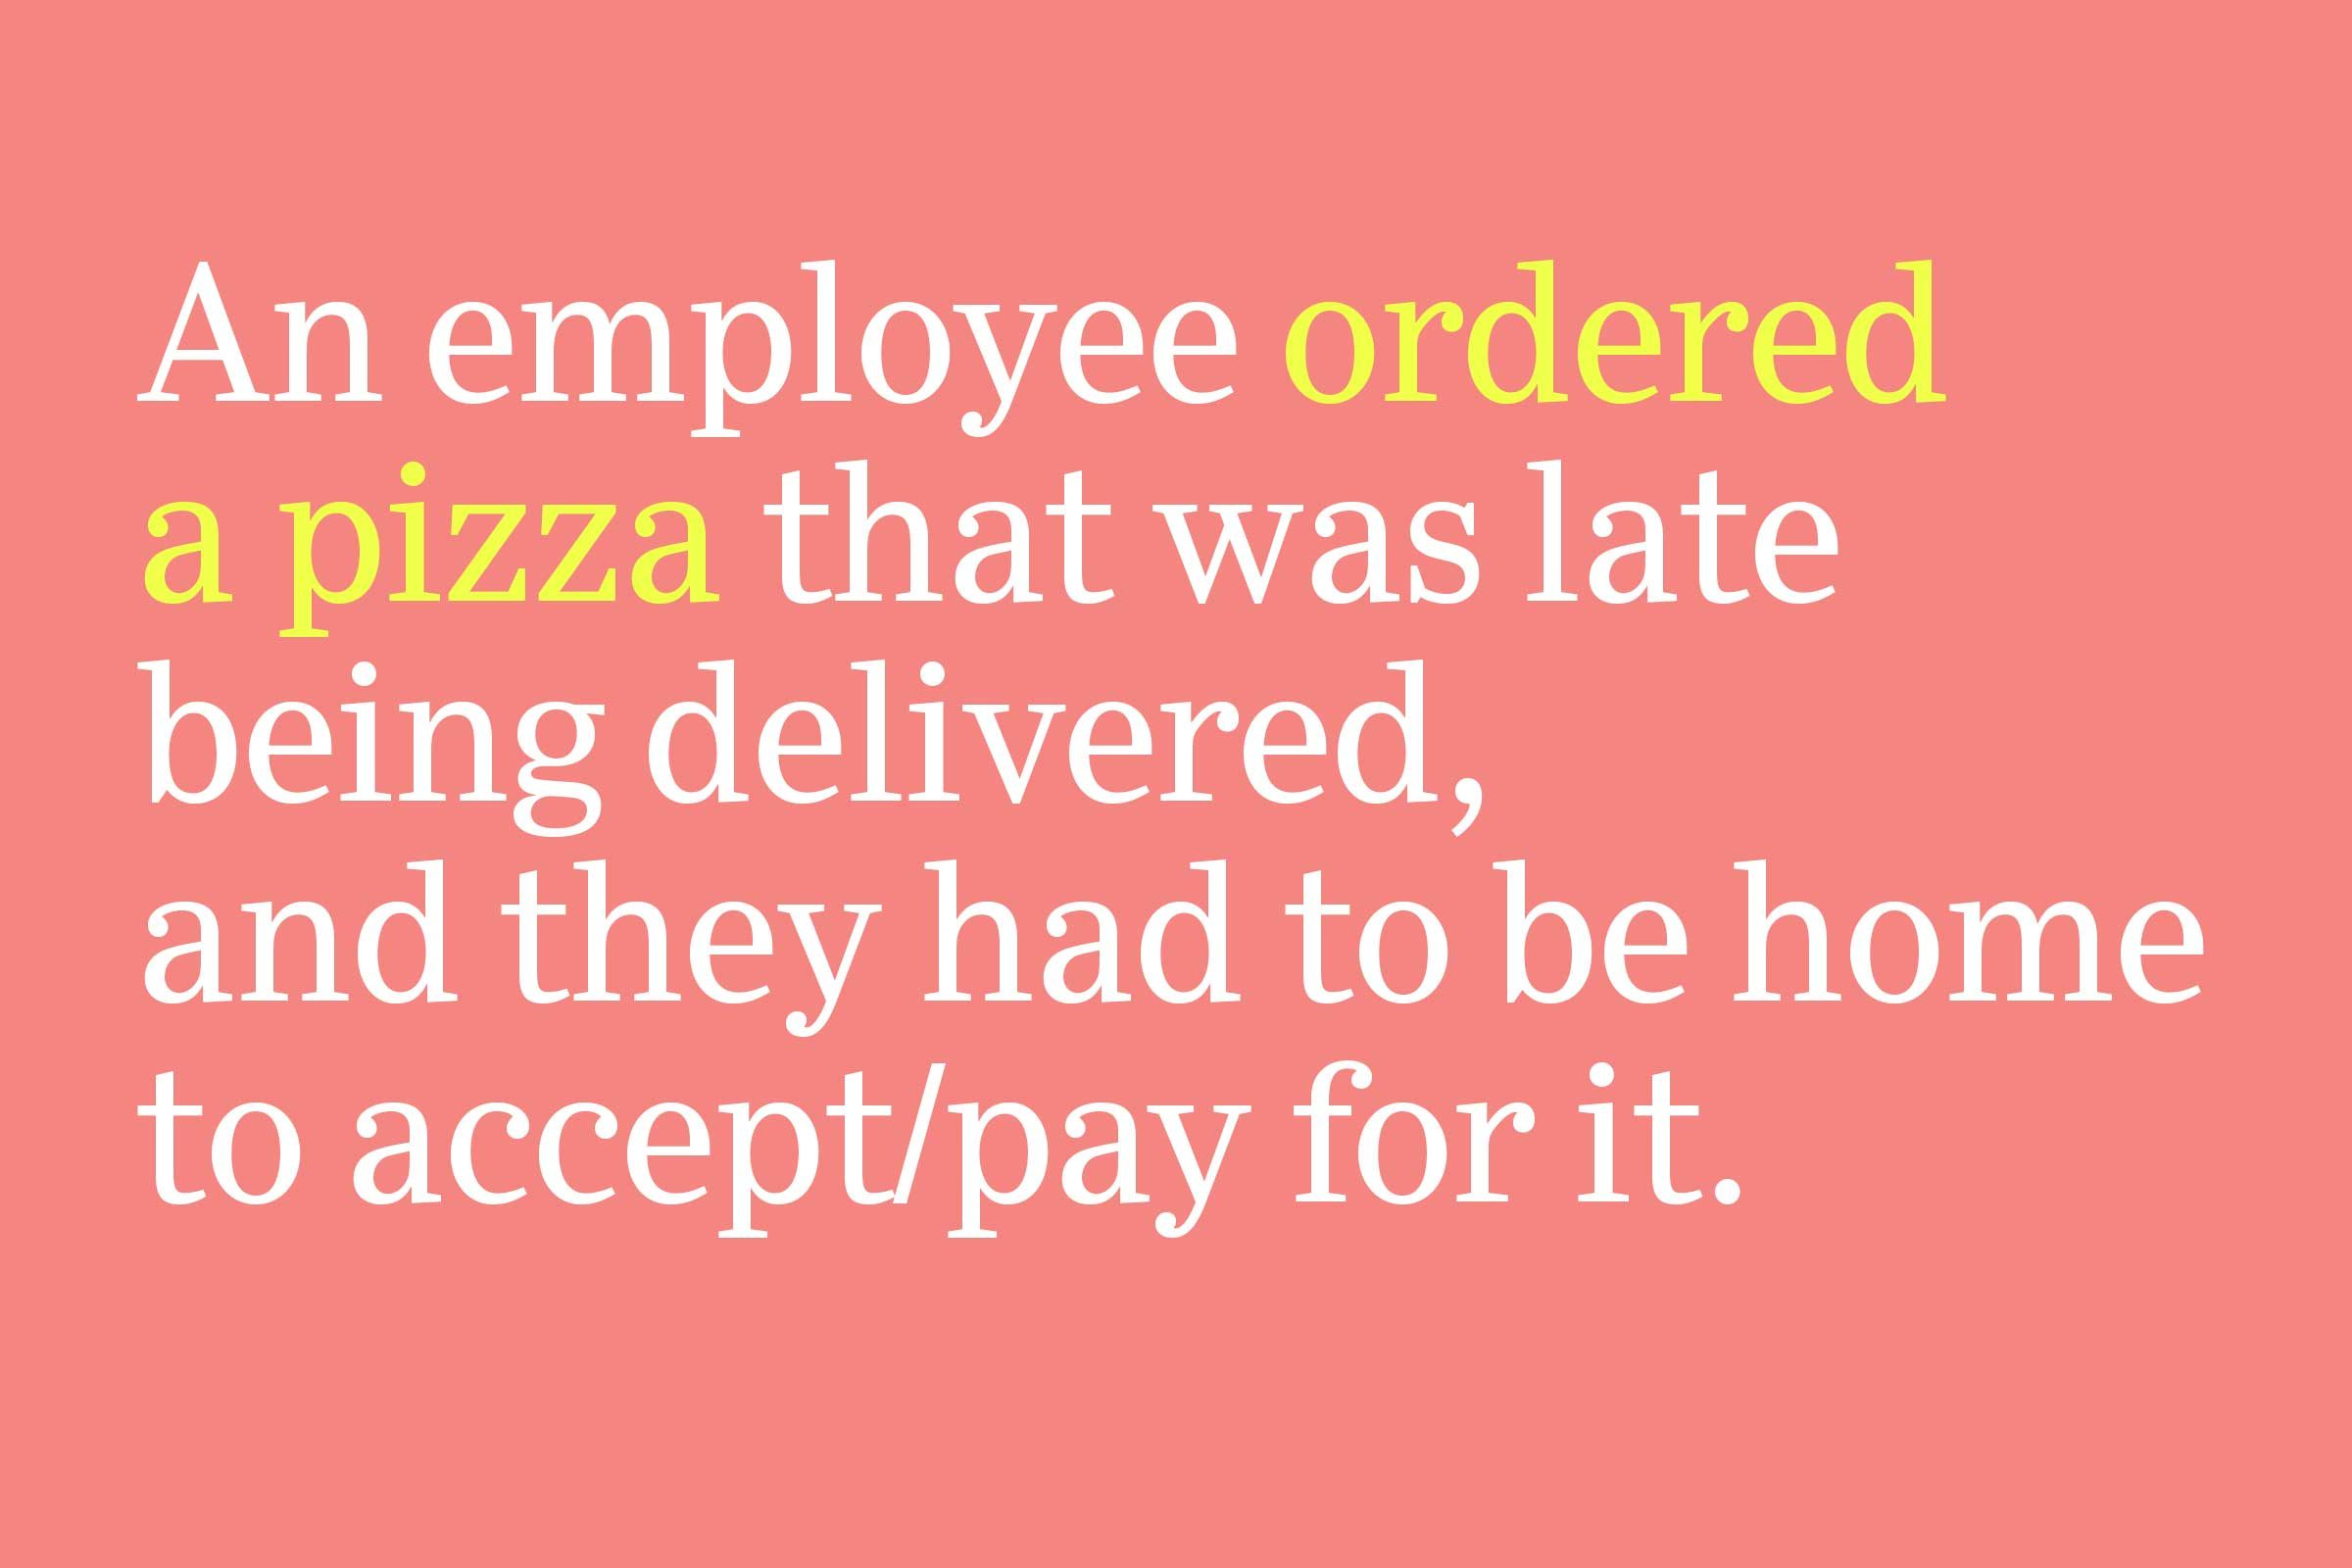 Ordered a pizza